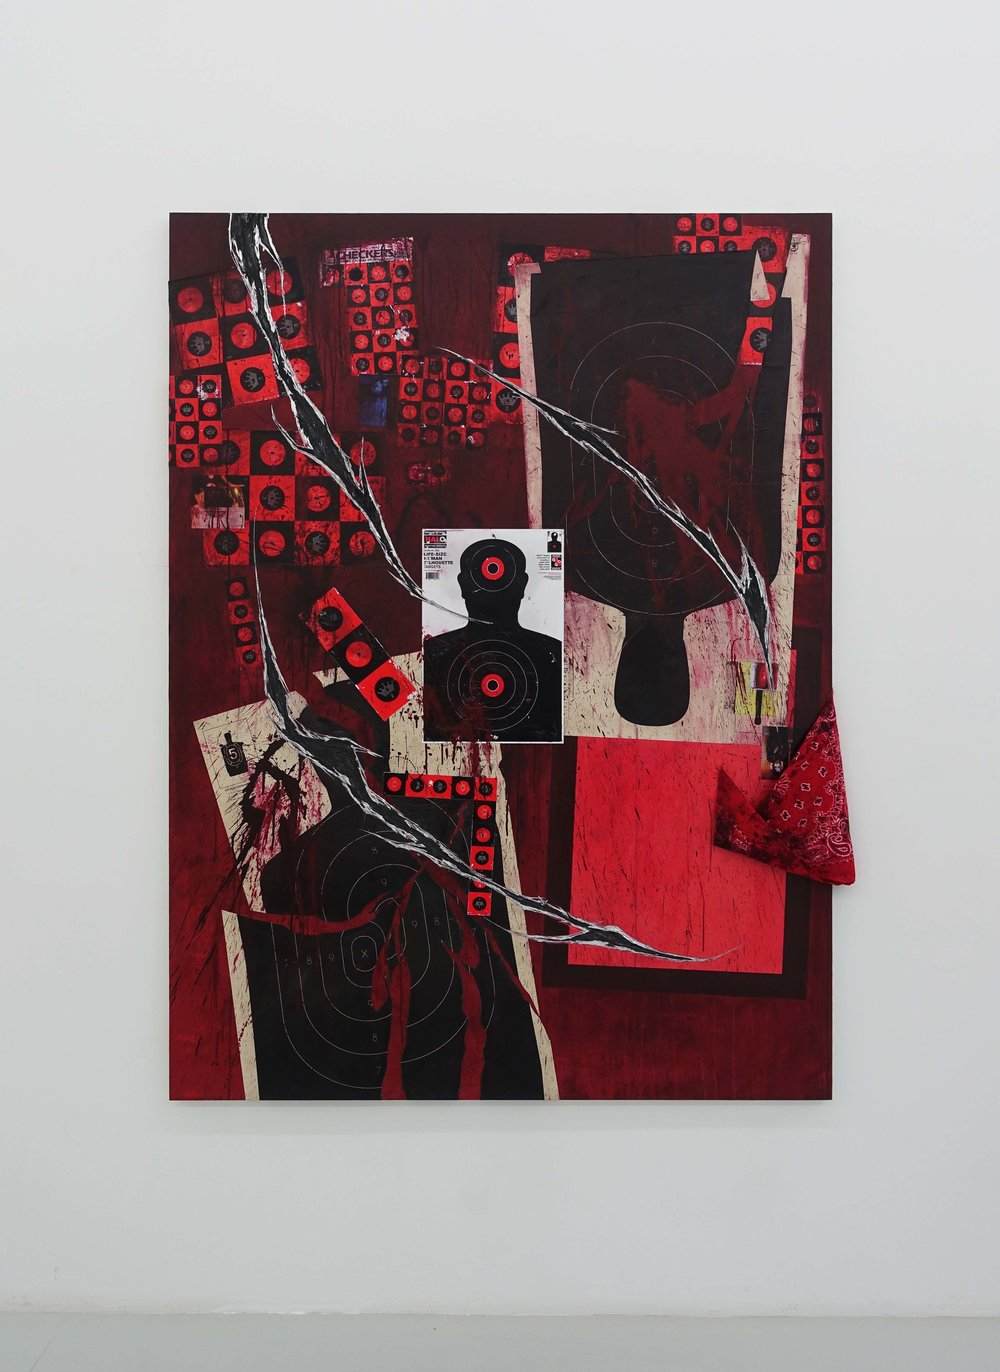 Ian Tee, 'EVIDENCE', 2019, acrylic, target paper, collage, song booklet and bandana on destroyed aluminium composite panel, 200 x 150cm. Image courtesy of the artist and Yavuz Gallery.